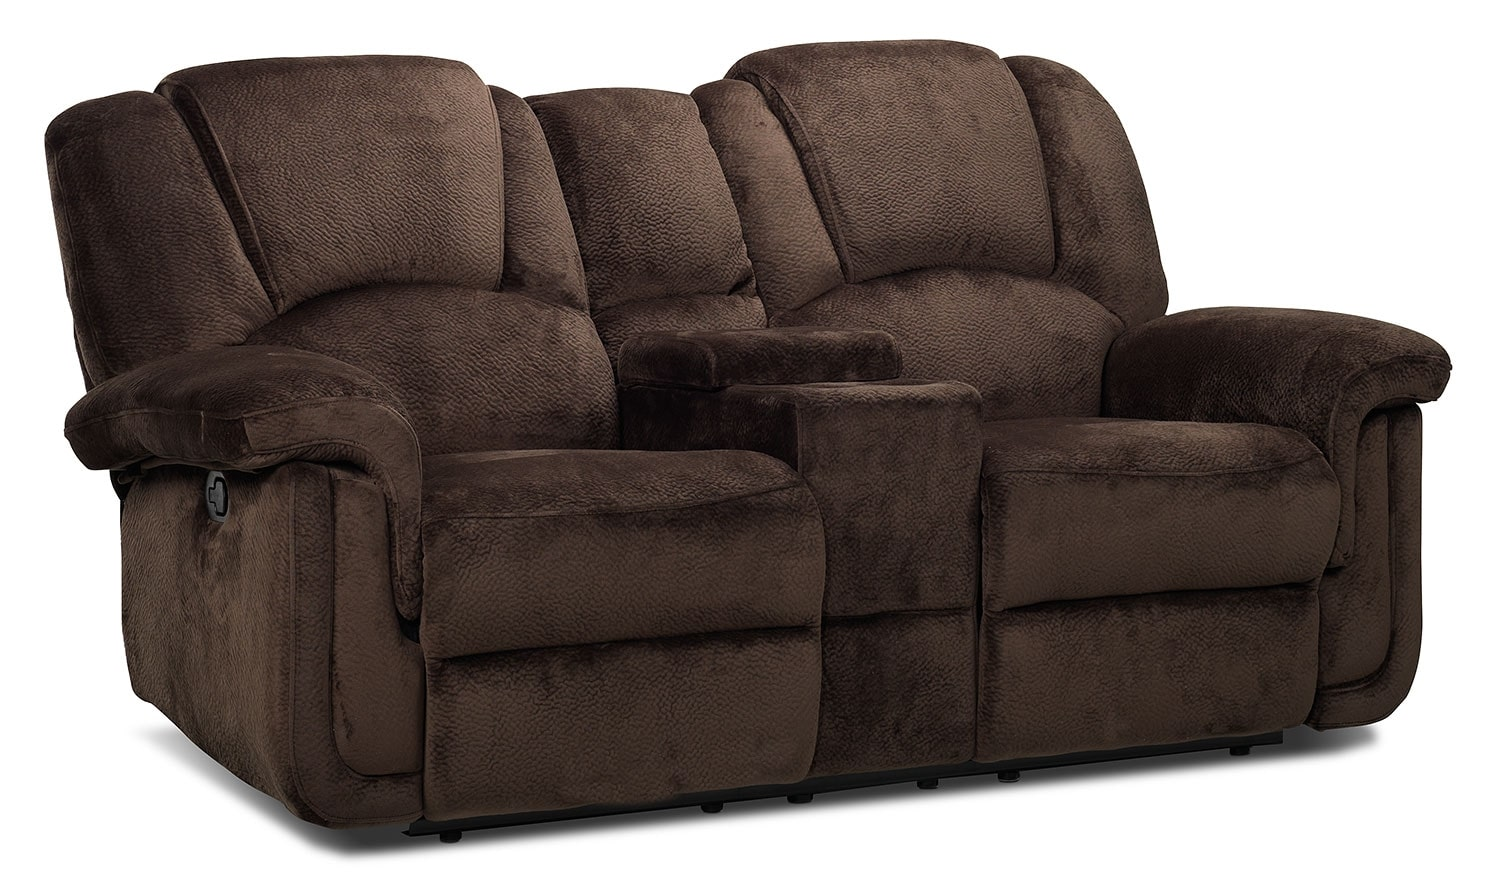 Pitch Reclining Loveseat w/ Console - Espresso